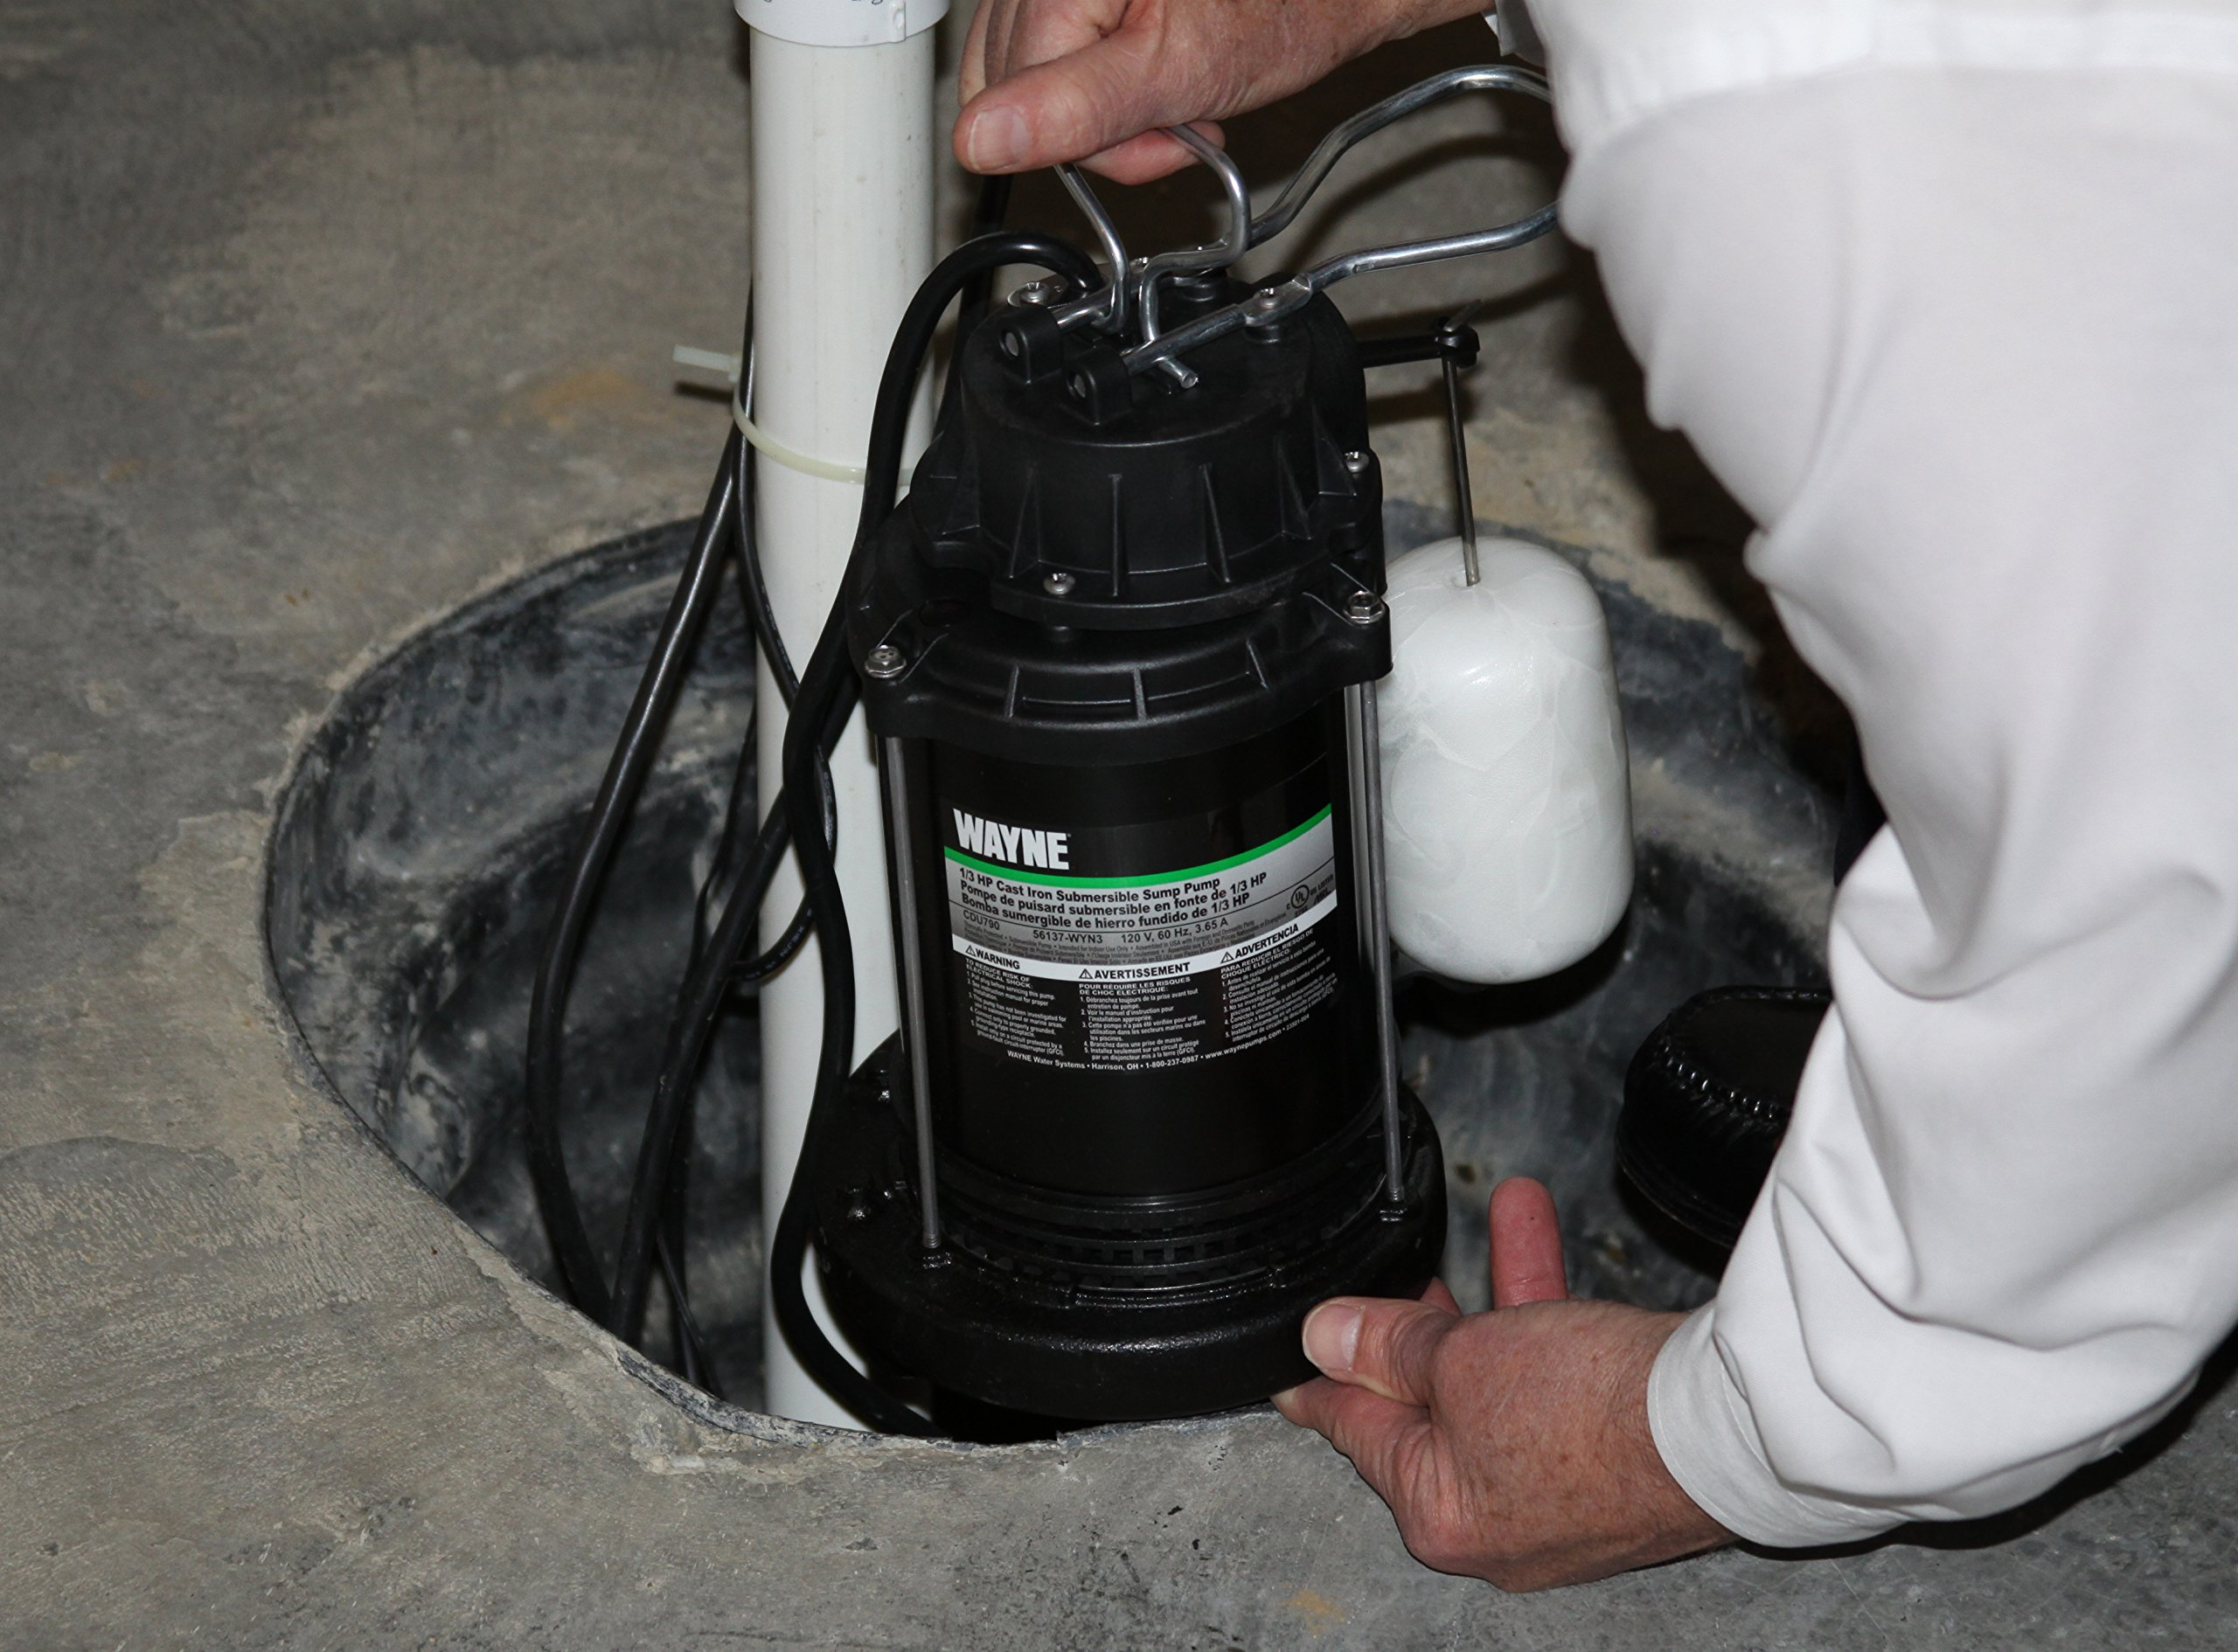 WAYNE CDU800 1/2 HP Submersible Cast Iron and Steel Sump Pump With Integrated Vertical Float Switch by Wayne (Image #2)